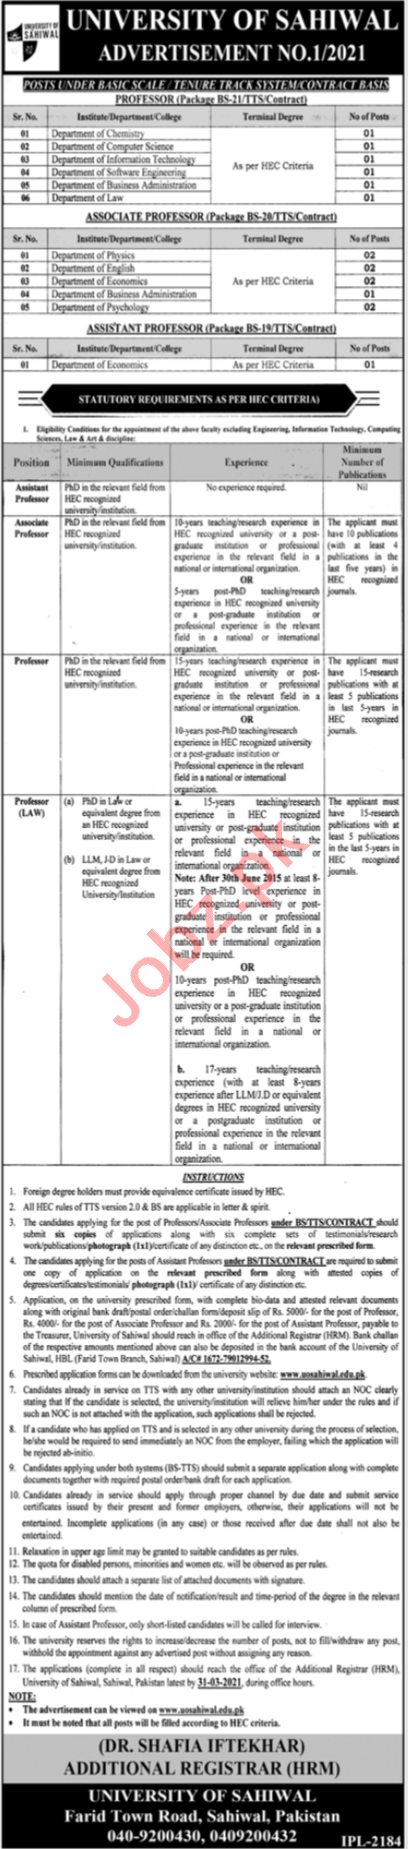 University of Sahiwal Jobs 2021 for Professors